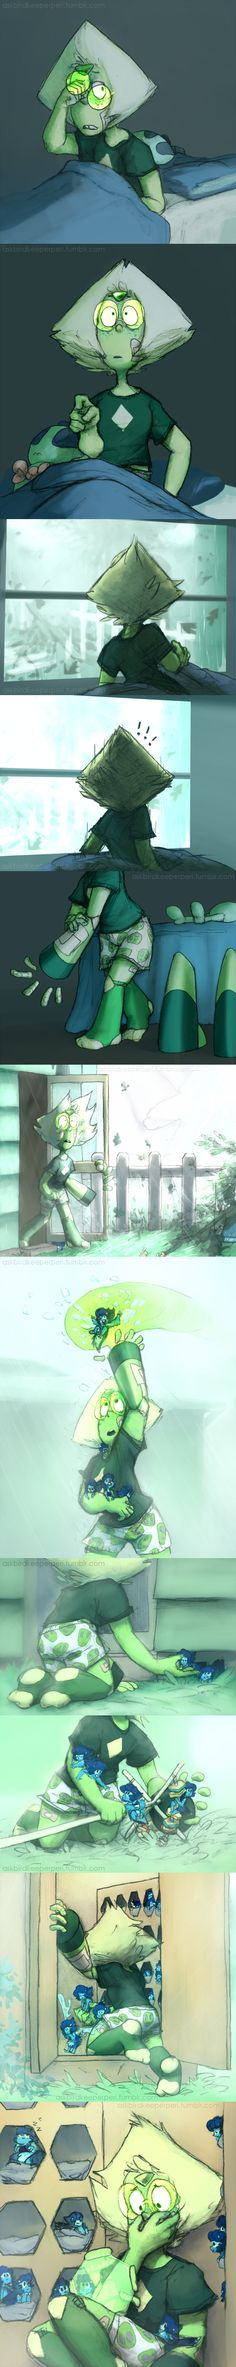 Art drawings sad steven universe ideas for 2019 Lapidot, Gorillaz, Lapis Lazuli, Gravity Falls, Cartoon Network, My Little Pony, Fanart, Steven Universe Memes, Amazing